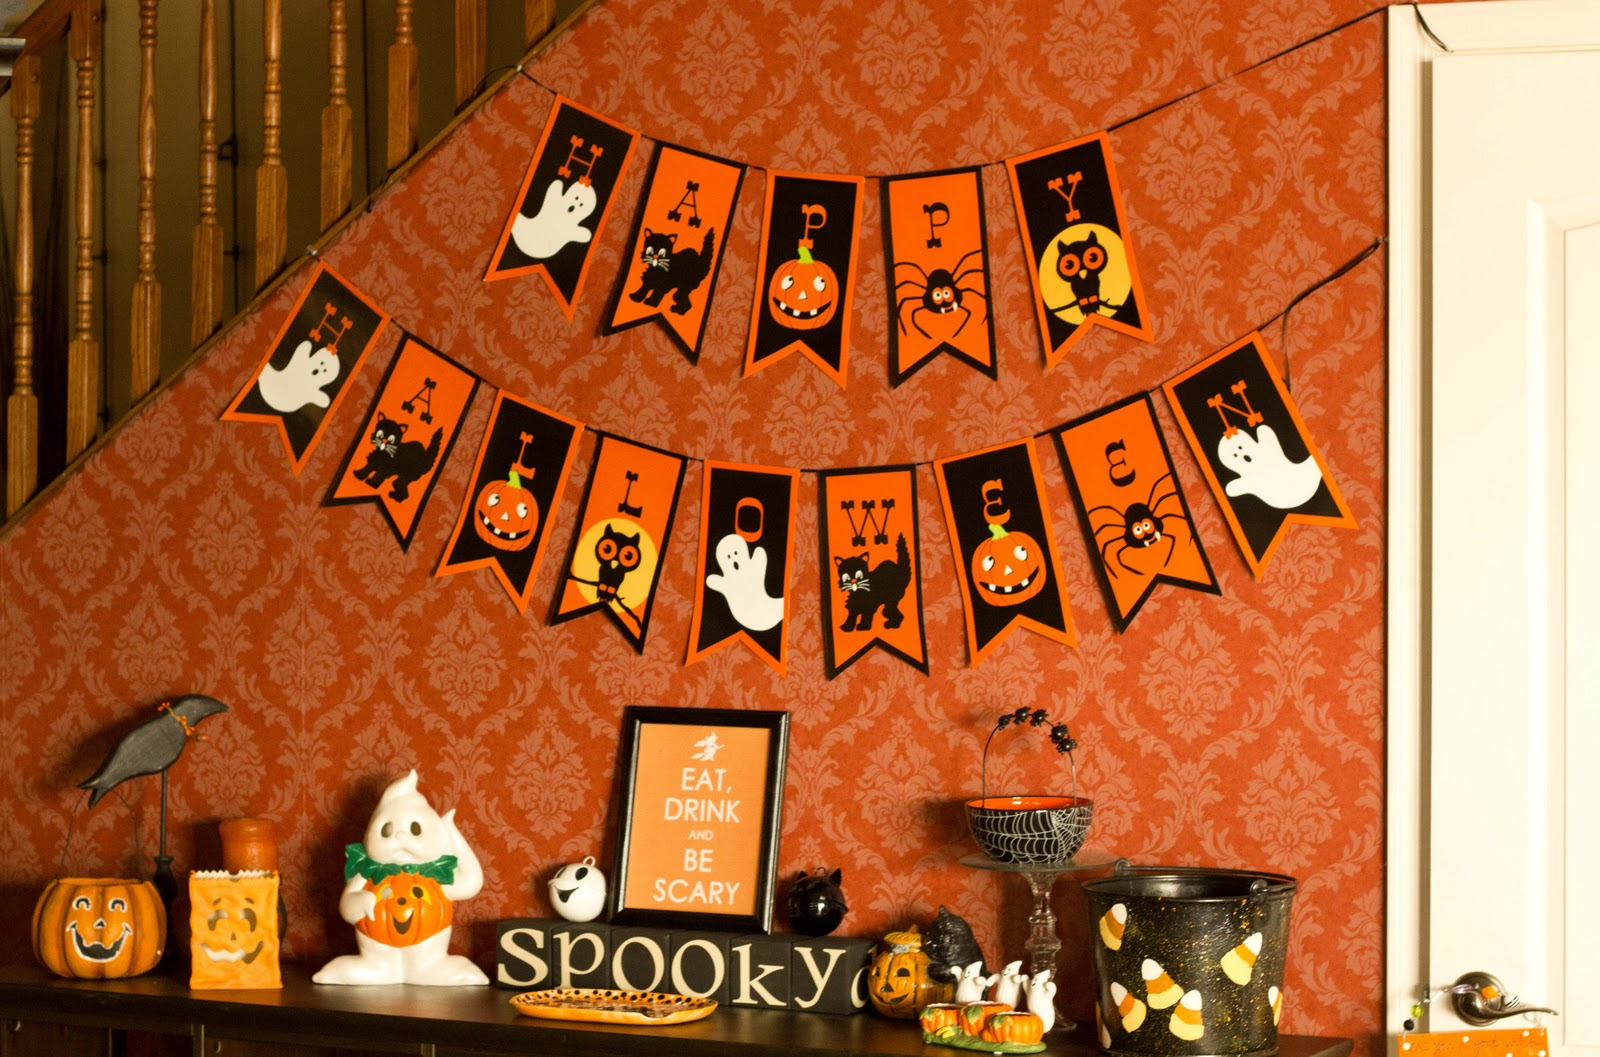 Most Inspiring Wallpaper Halloween Vintage - Vintage-Halloween-Wallpapers-067  HD_628633.jpg